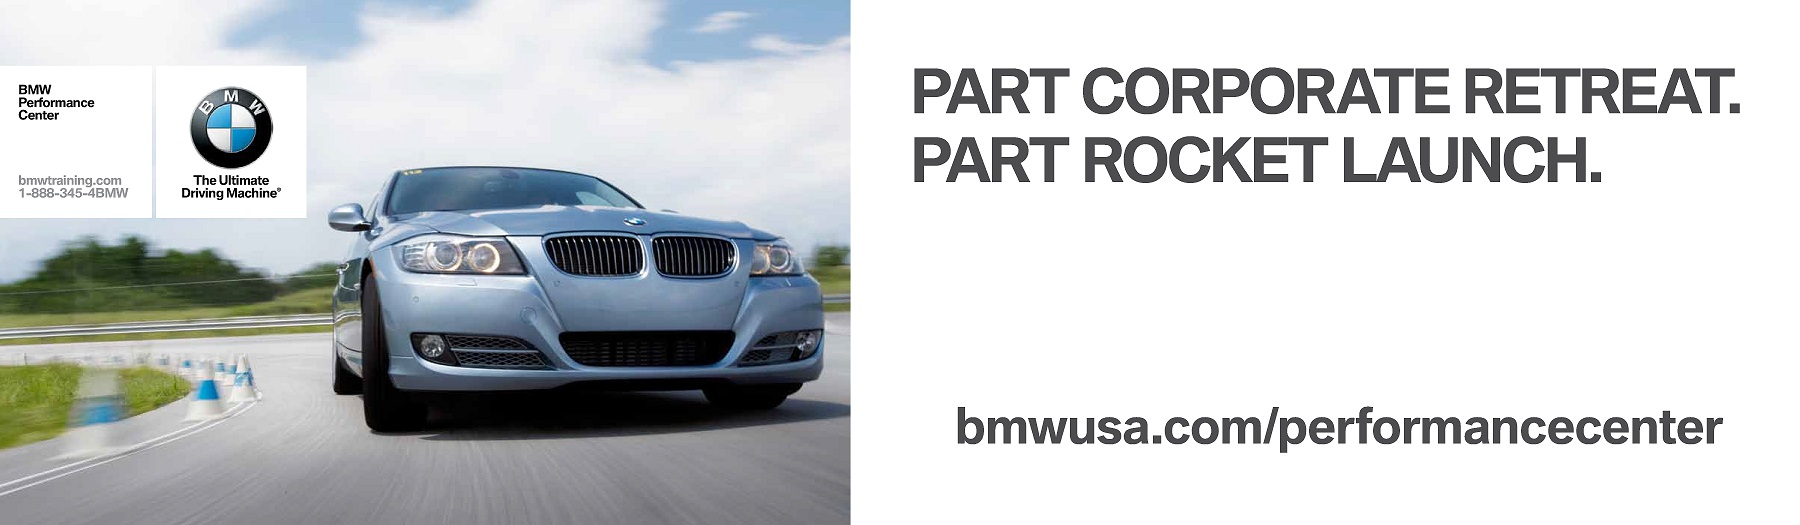 BMW-Performance-Center-advertising-copywriting-Lochness-Marketing-corporate-rocket-launch